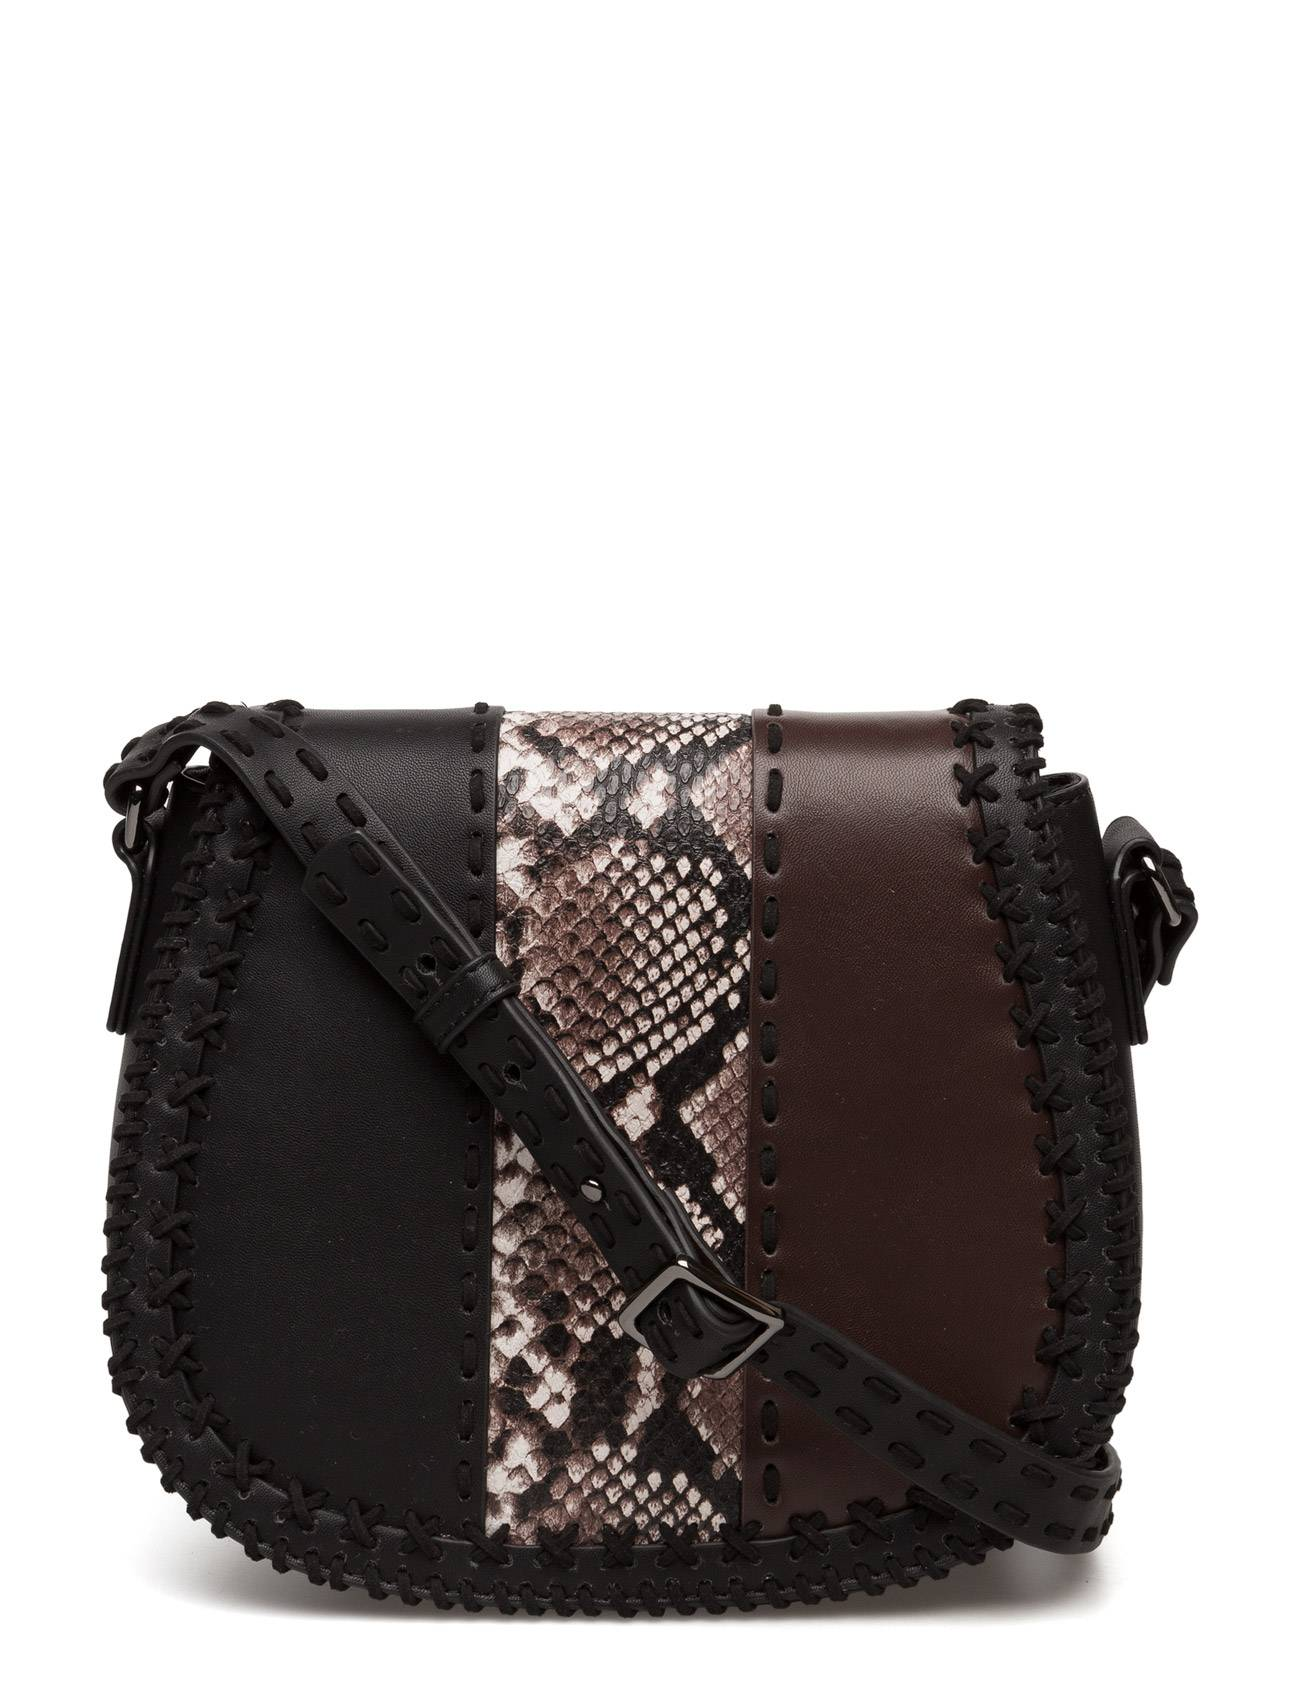 French Connection Rianne Whipstitch Cross Body